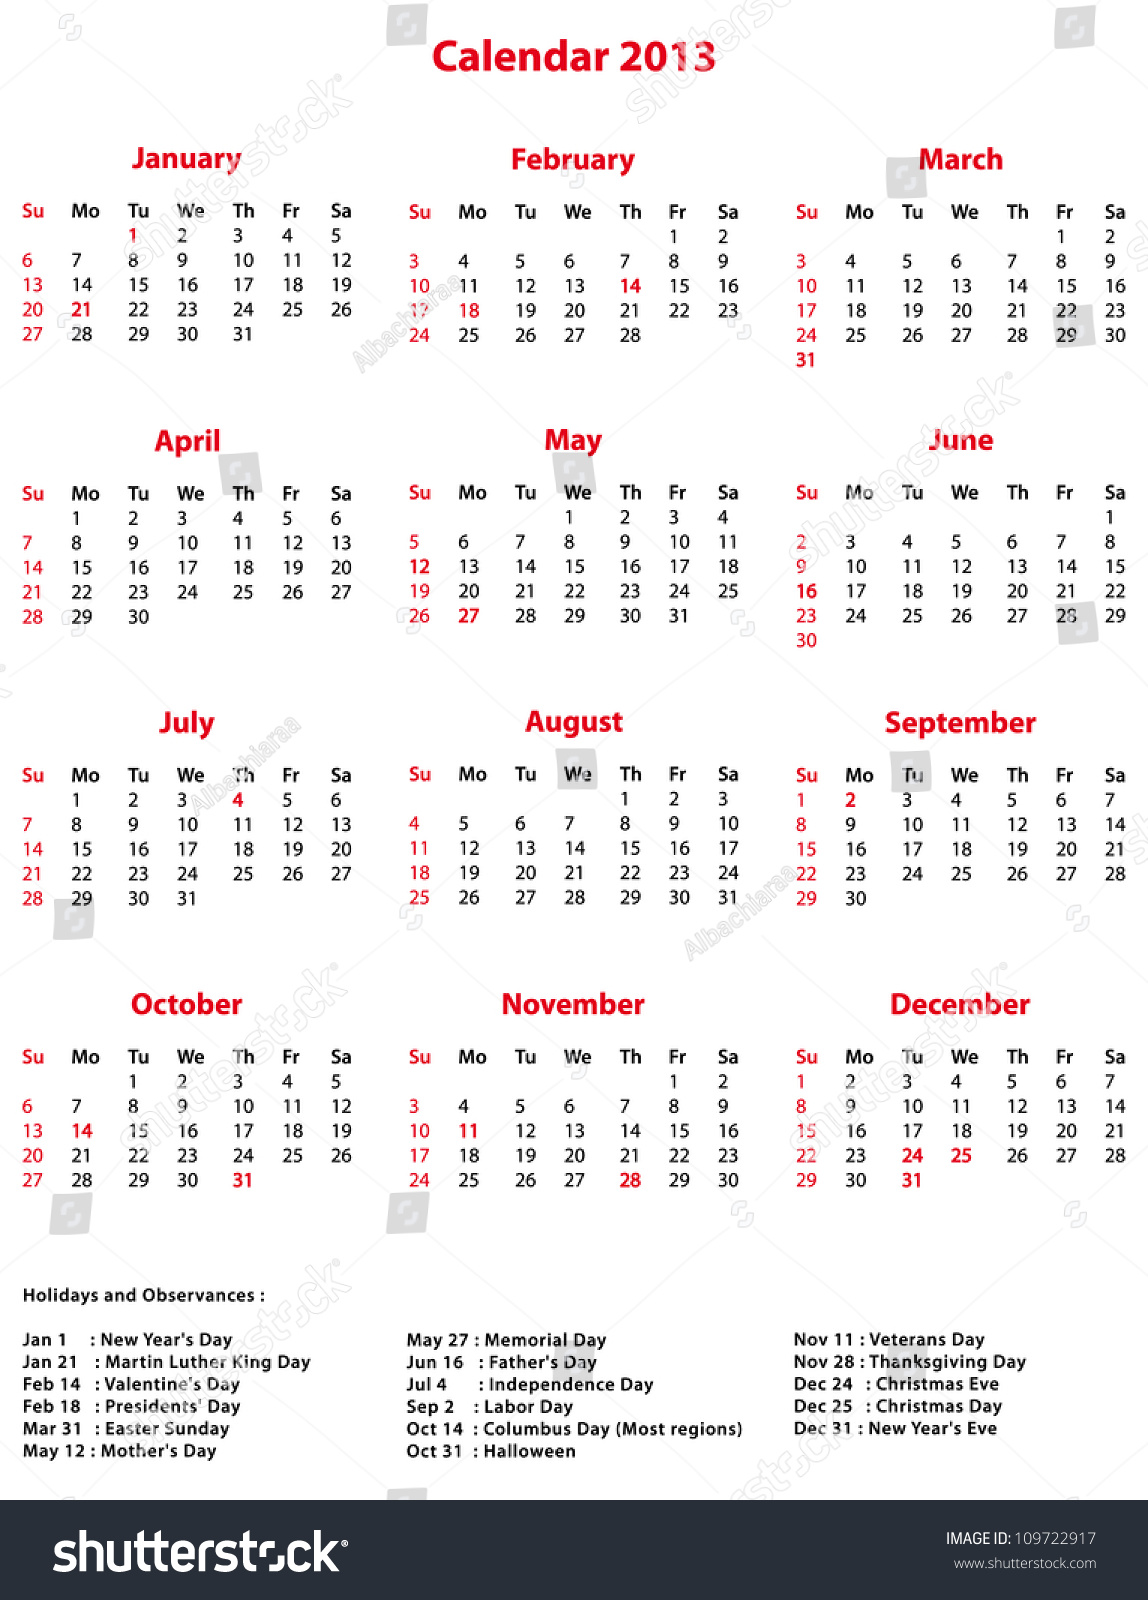 Simple 2013 Office Calendar With Holidays And Observances. Stock Photo ...